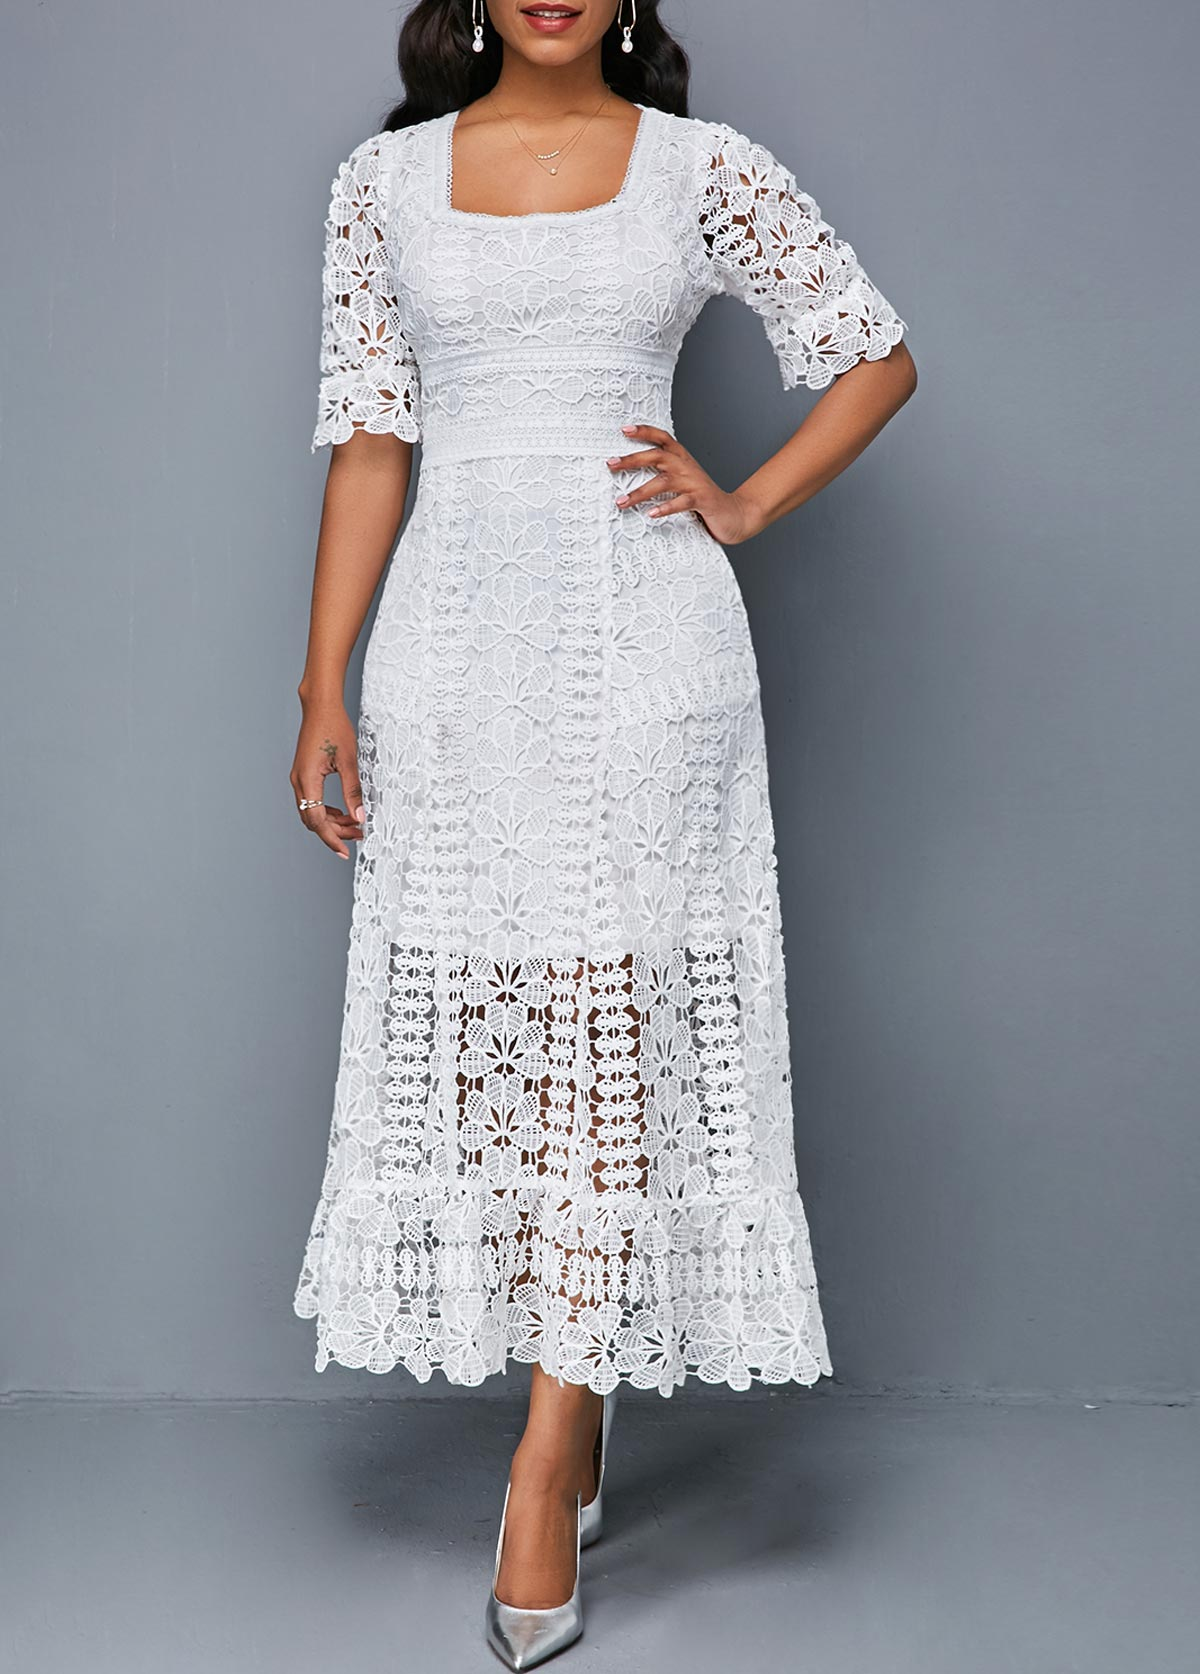 Square Collar White Short Sleeve Lace Dress Rosewe Com